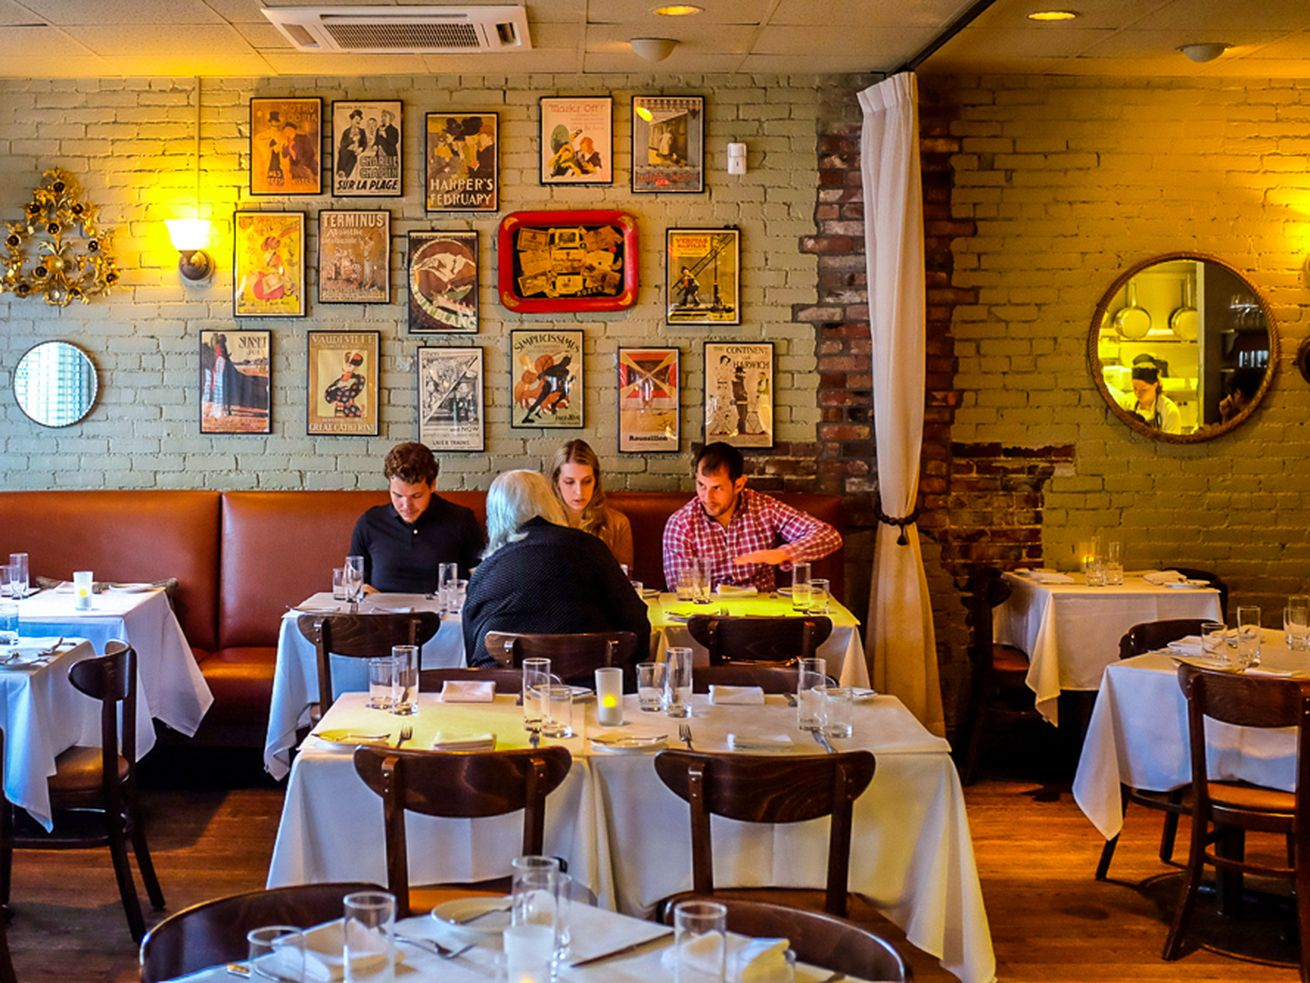 The inside of a sort of casual, bistro-like restaurant with white brick walls. Four young professionals sit at a white tablecloth-covered table.